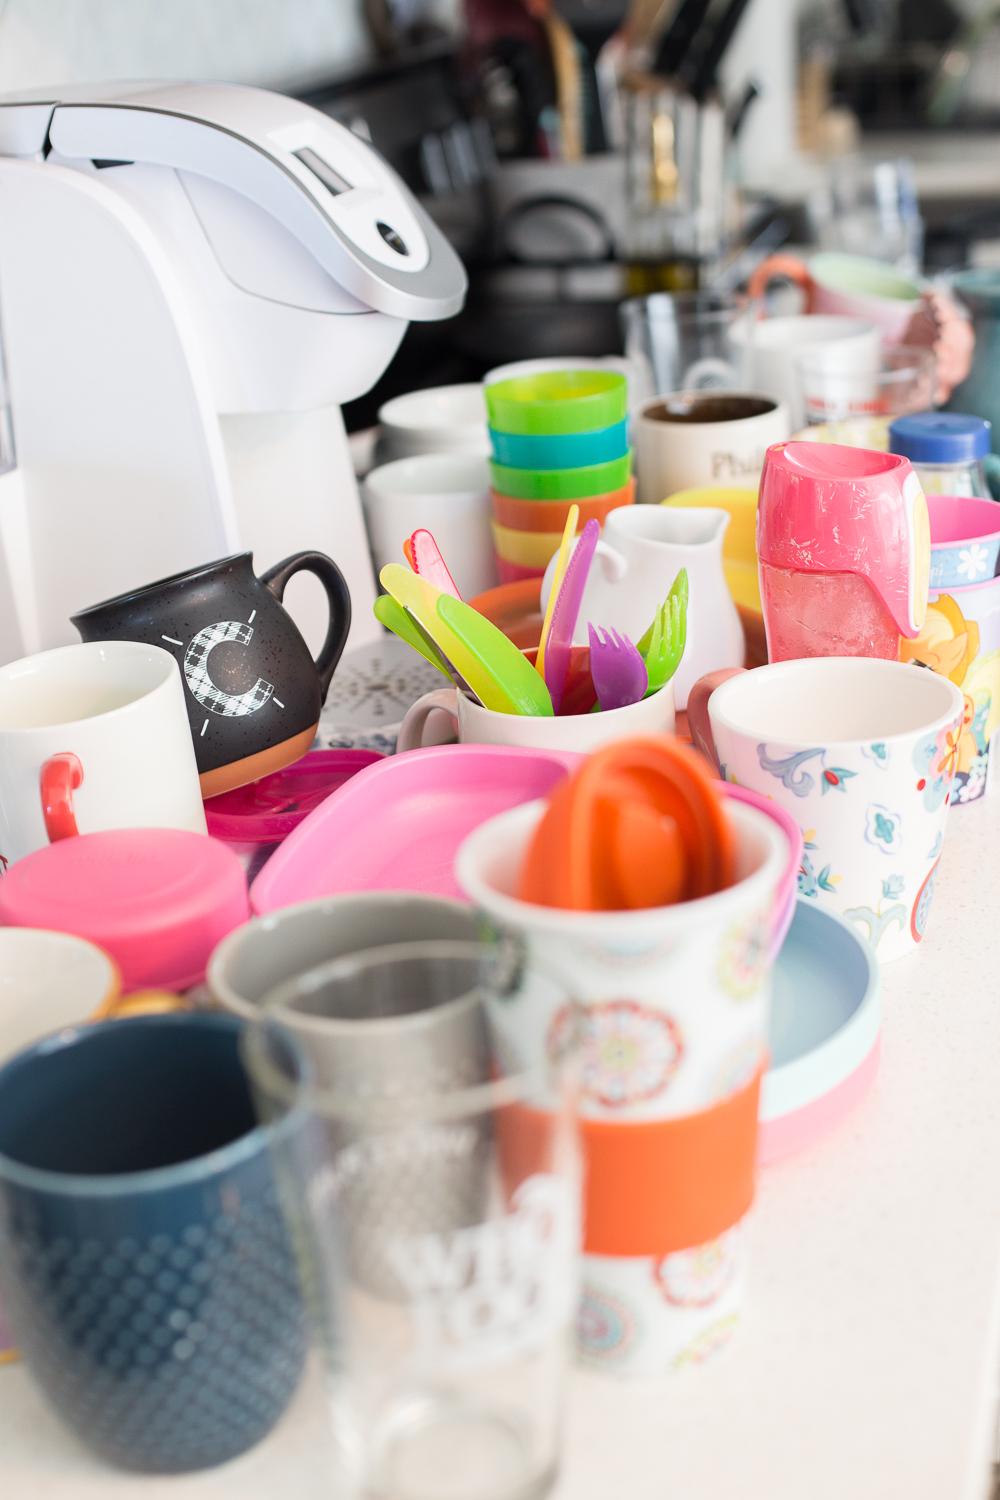 How I finally organized my kitchen once and for all - helpful tips